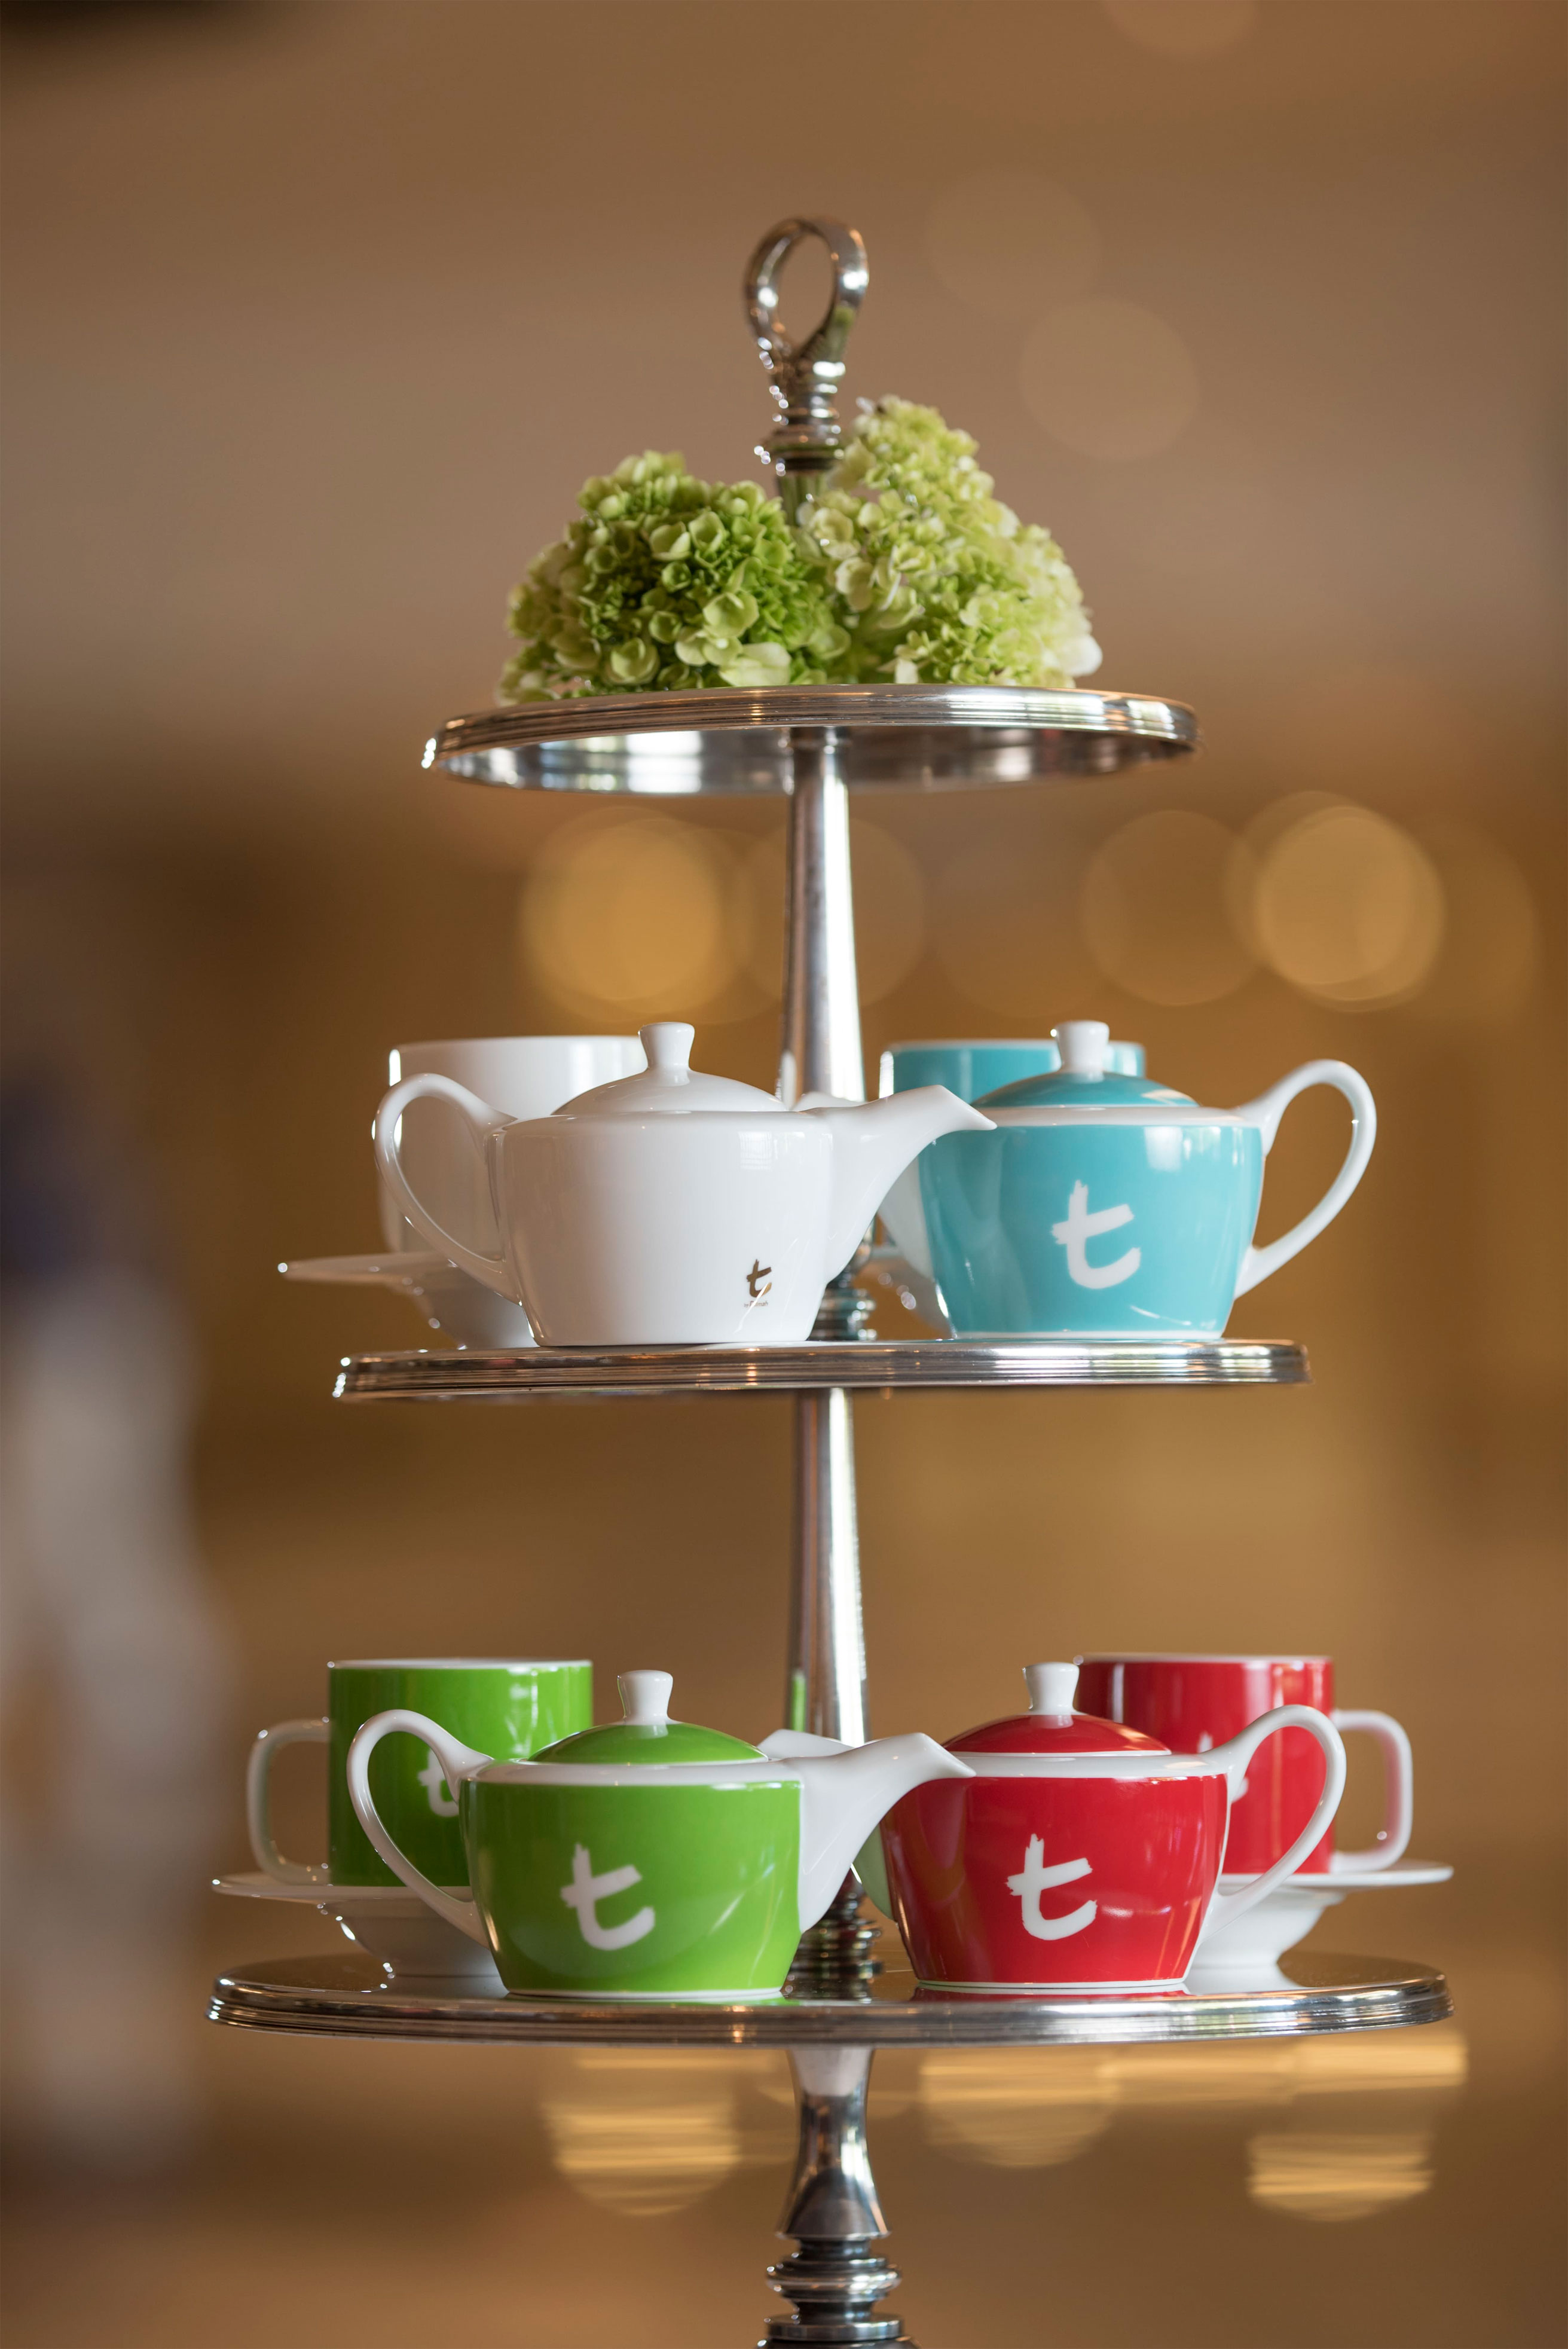 The lively and vibrant tea pots and cups features a contemporary tea presentation that invites guests to a delightful experience